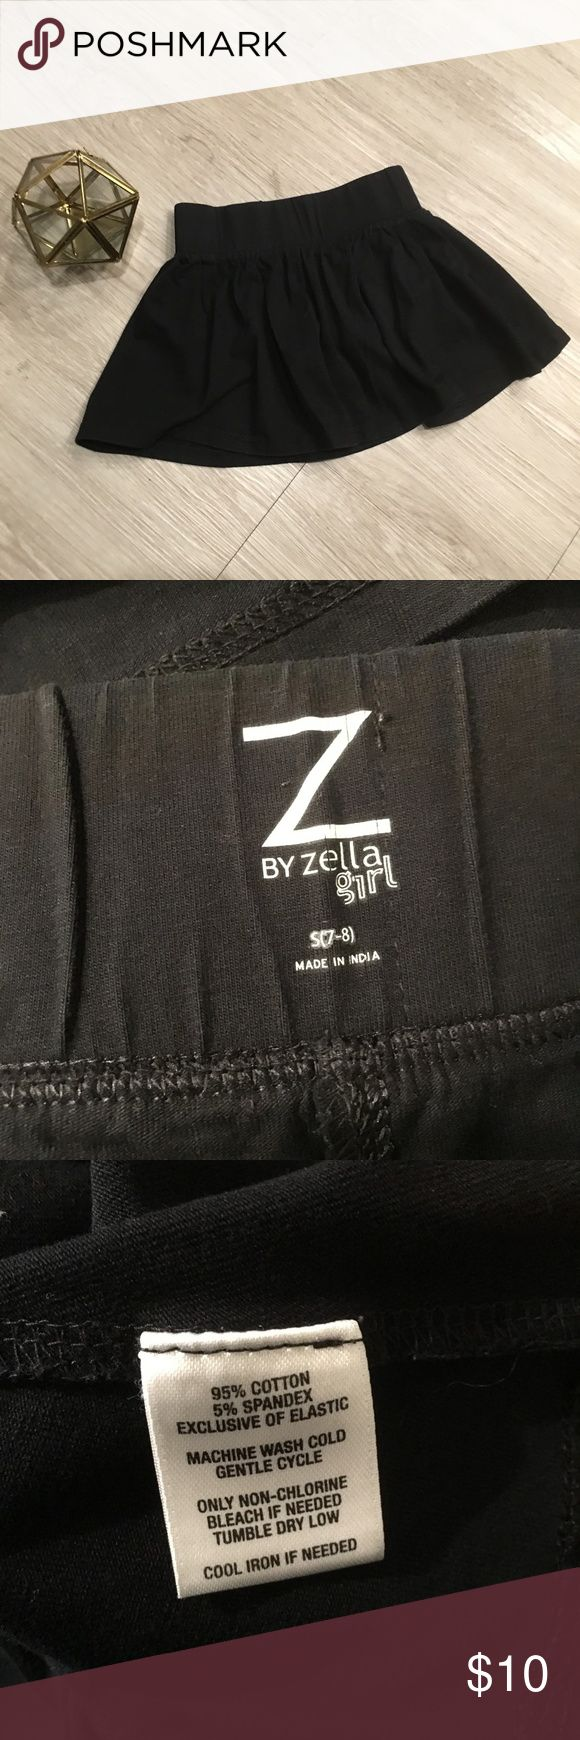 """Zella Girls Skort Flare Shorts Black Small 7 - 8 -Used condition w/ normal signs of wear.  Brand – Zella Size – Girls – Small 7-8 Material – 95% Cotton 5% Spandex Color – Black *faded*  Measurements taken while lying flat Waist – 10.25"""" Back t2b – 11.5"""" Zella Bottoms Skorts"""